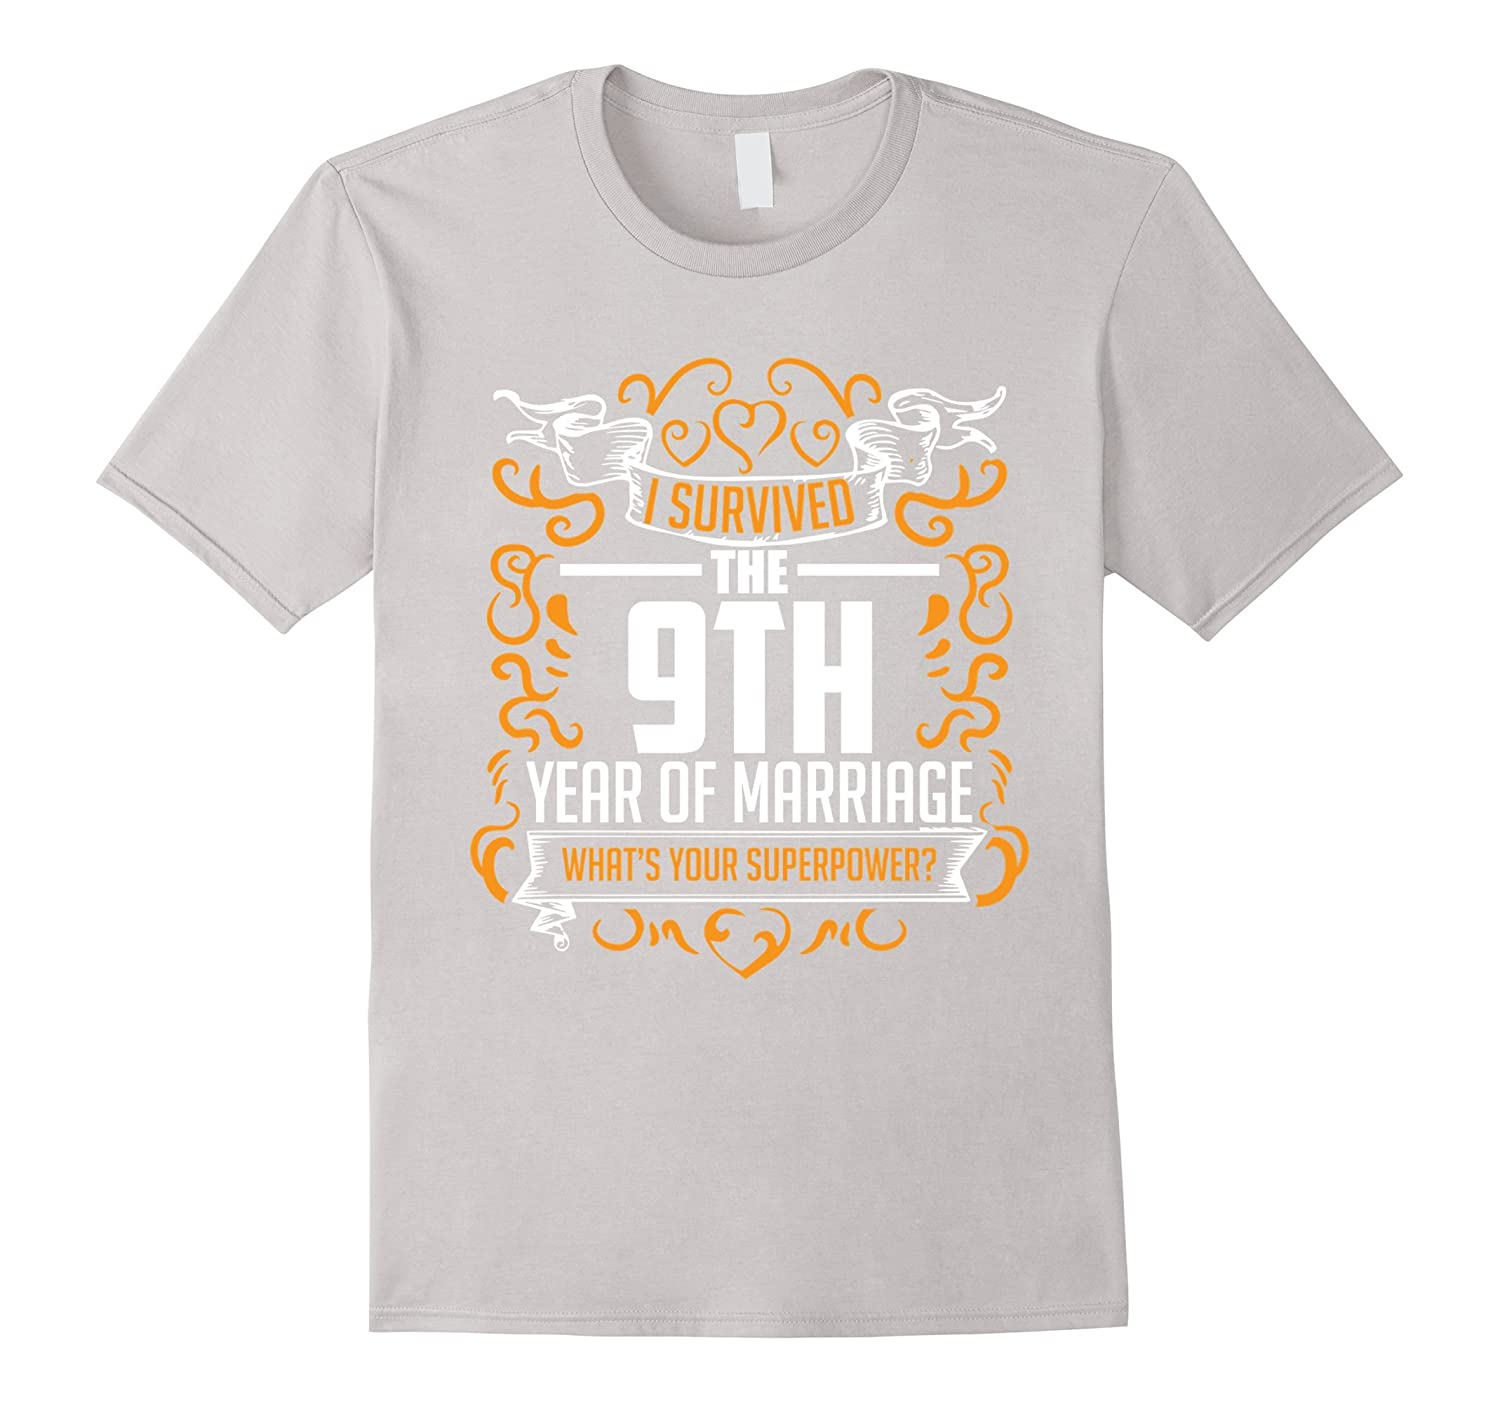 9th Wedding Anniversary Gifts 9 Year T Shirt For Her Him Best Design